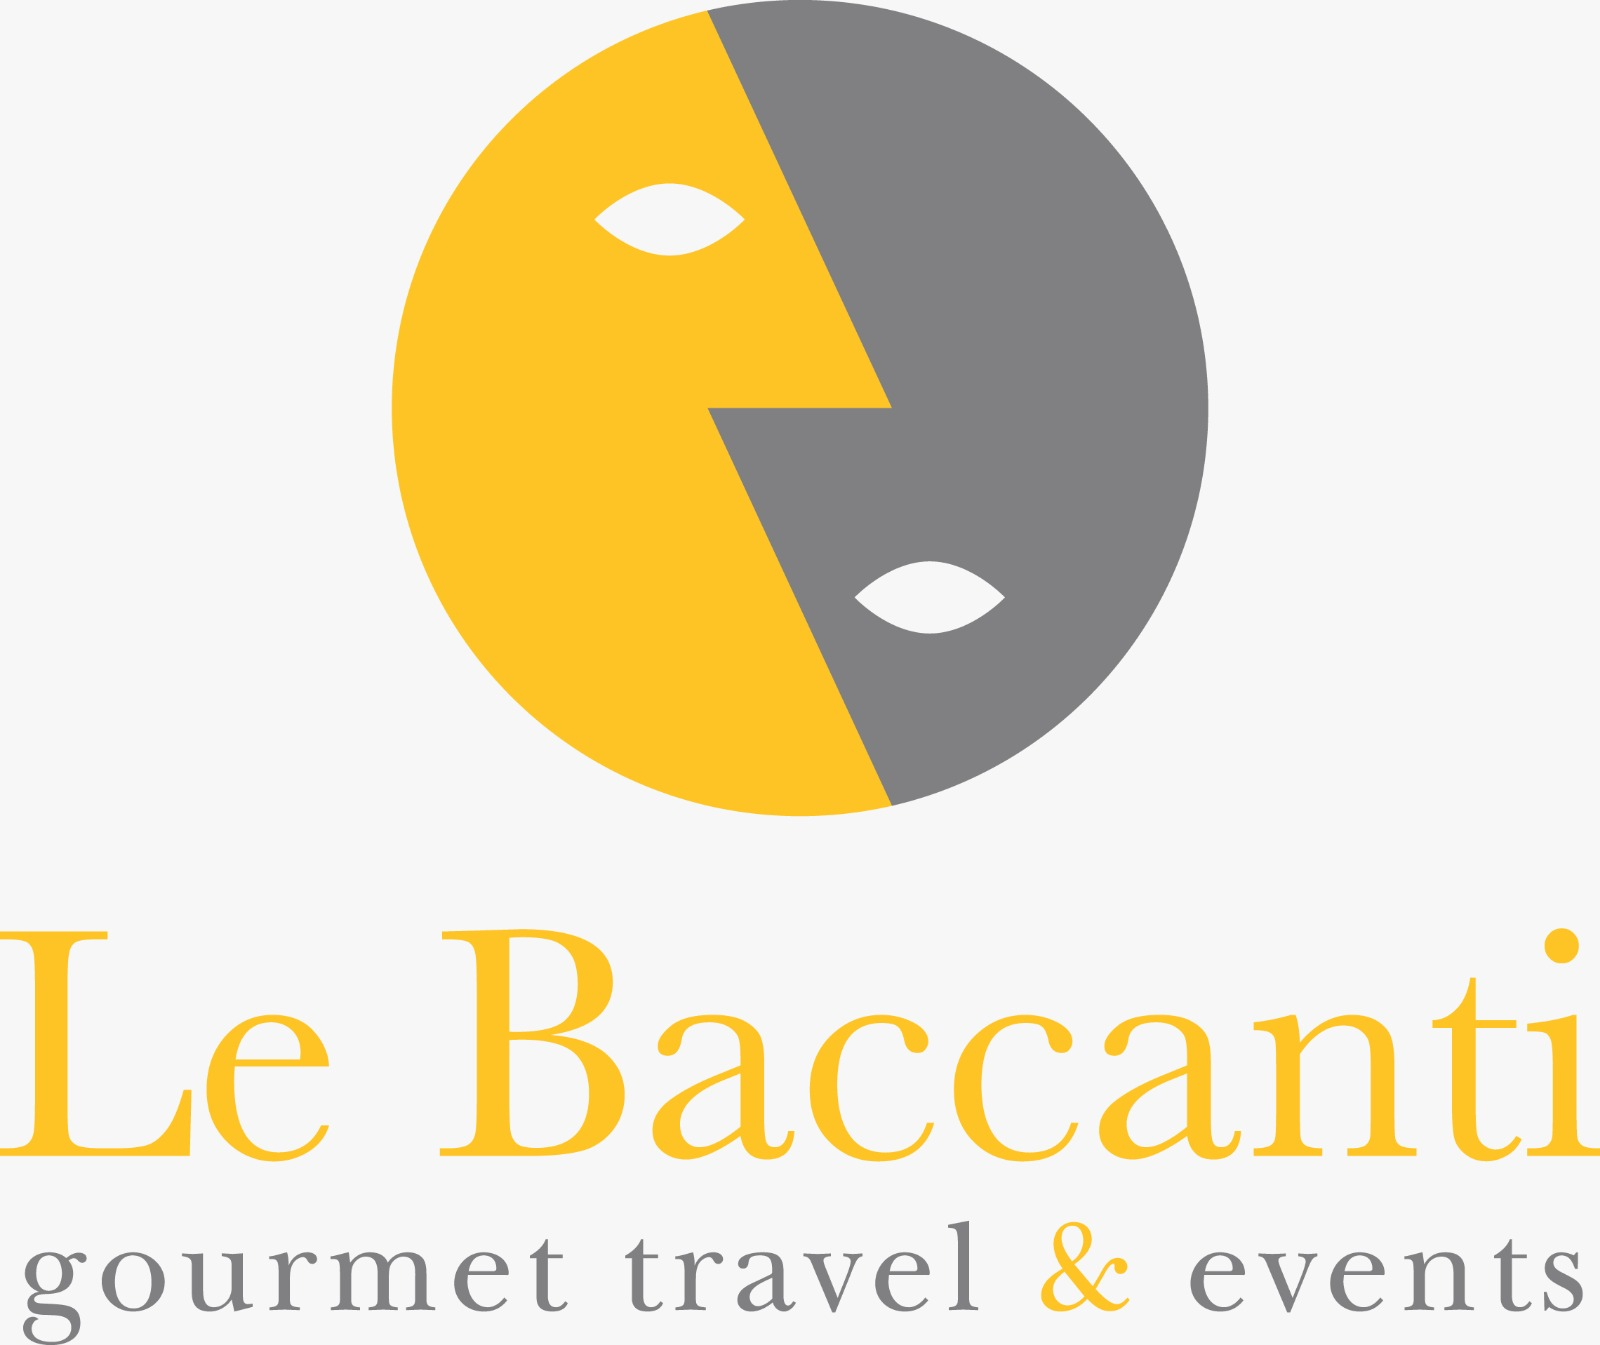 Le Baccanti - Gourmet Travel & Events